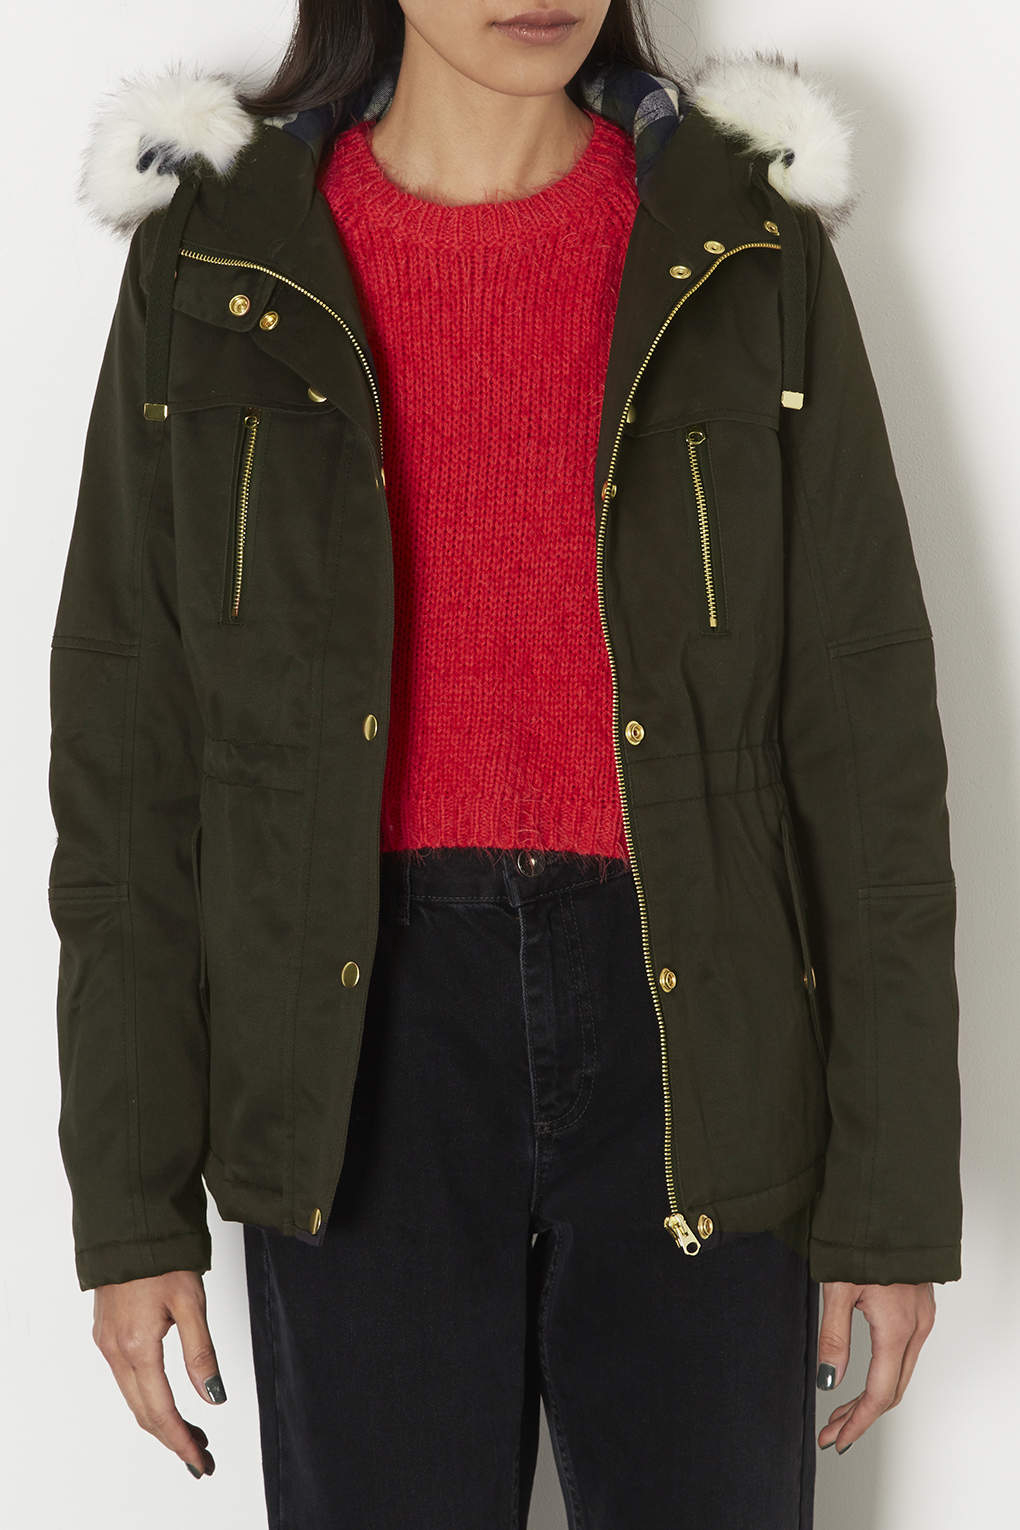 Top Shop Parka Coats - JacketIn